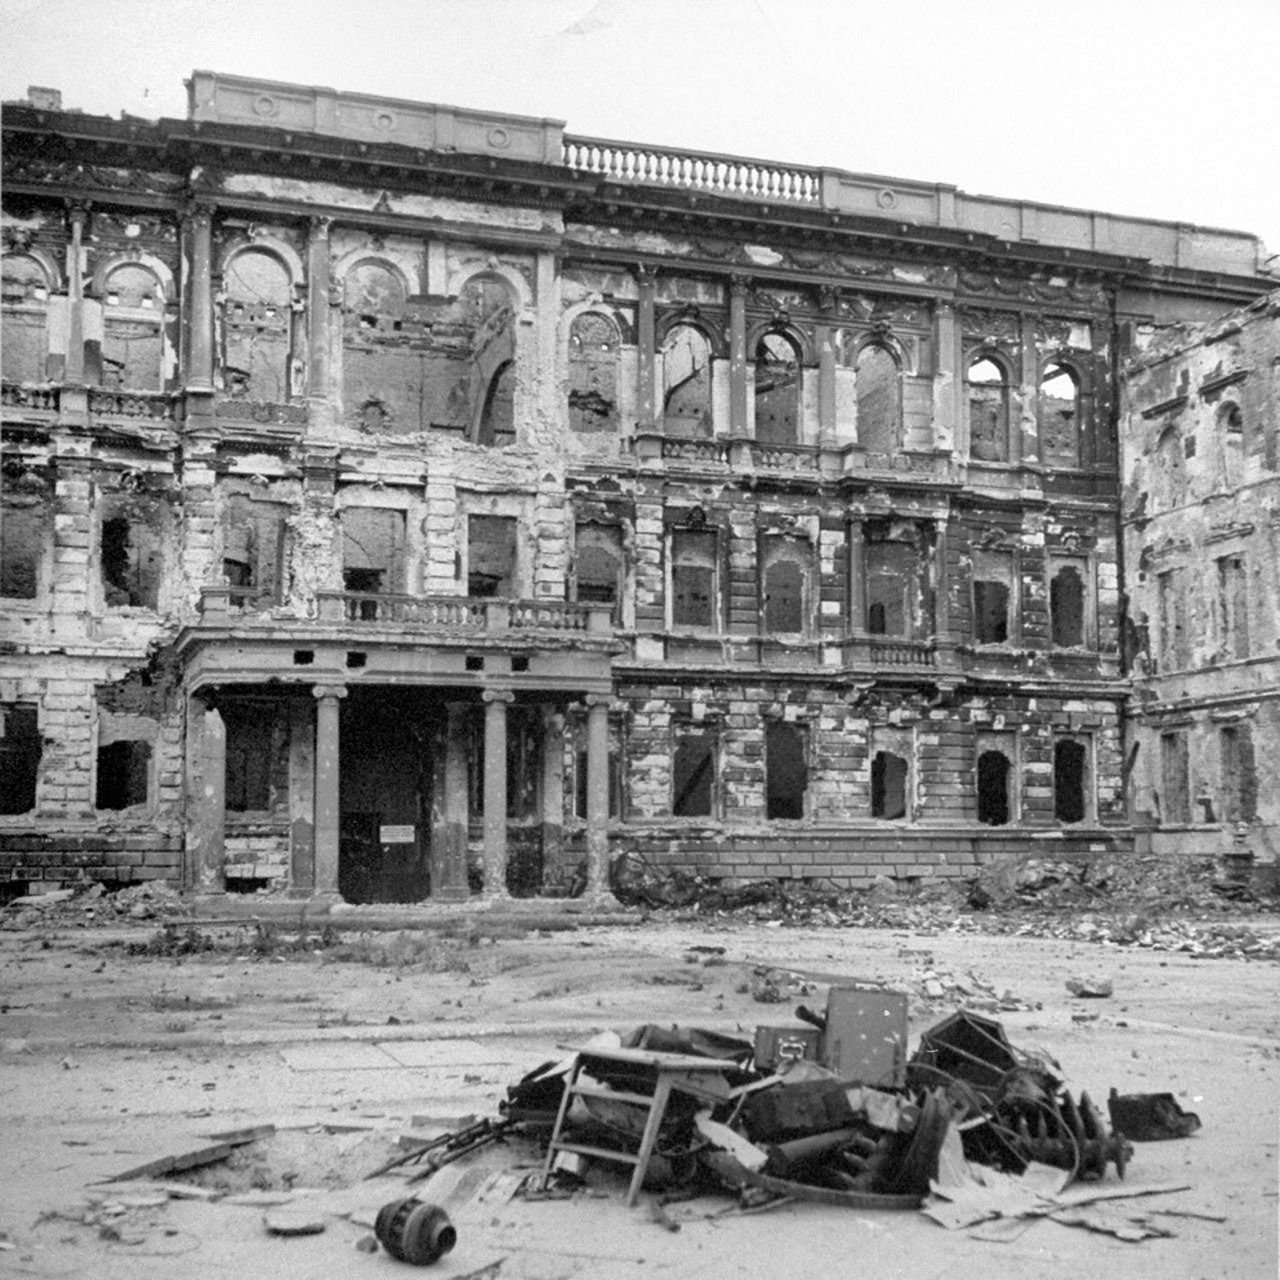 The ruins of the building that was the American Embassy in